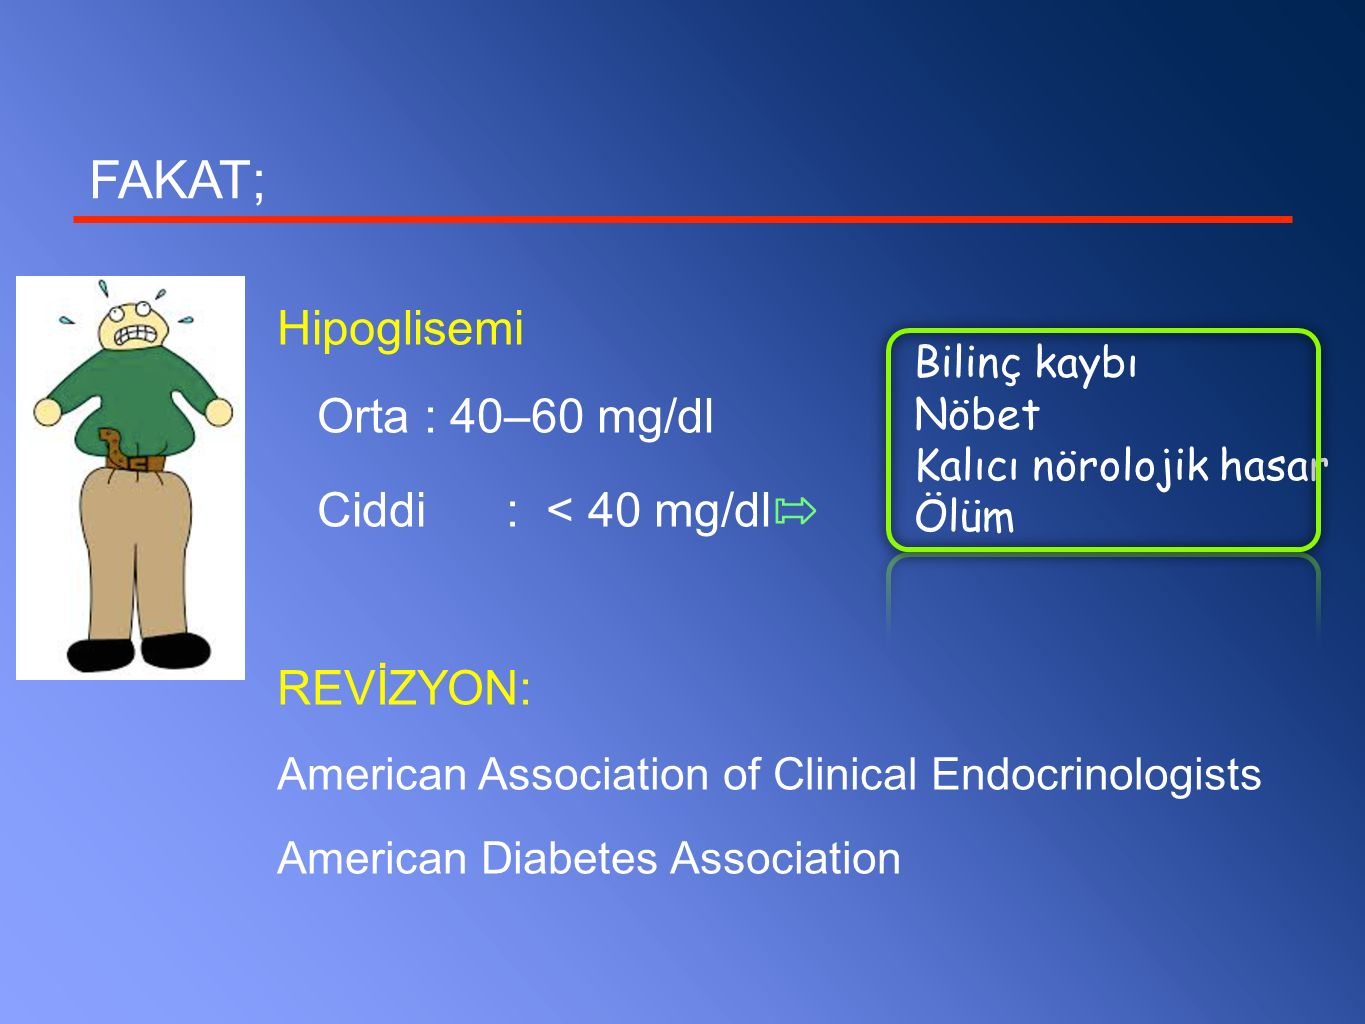 FAKAT; Hipoglisemi Orta : 40–60 mg/dl Ciddi : < 40 mg/dl REVİZYON: American Association of Clinical Endocrinologists American Diabetes Association Bil